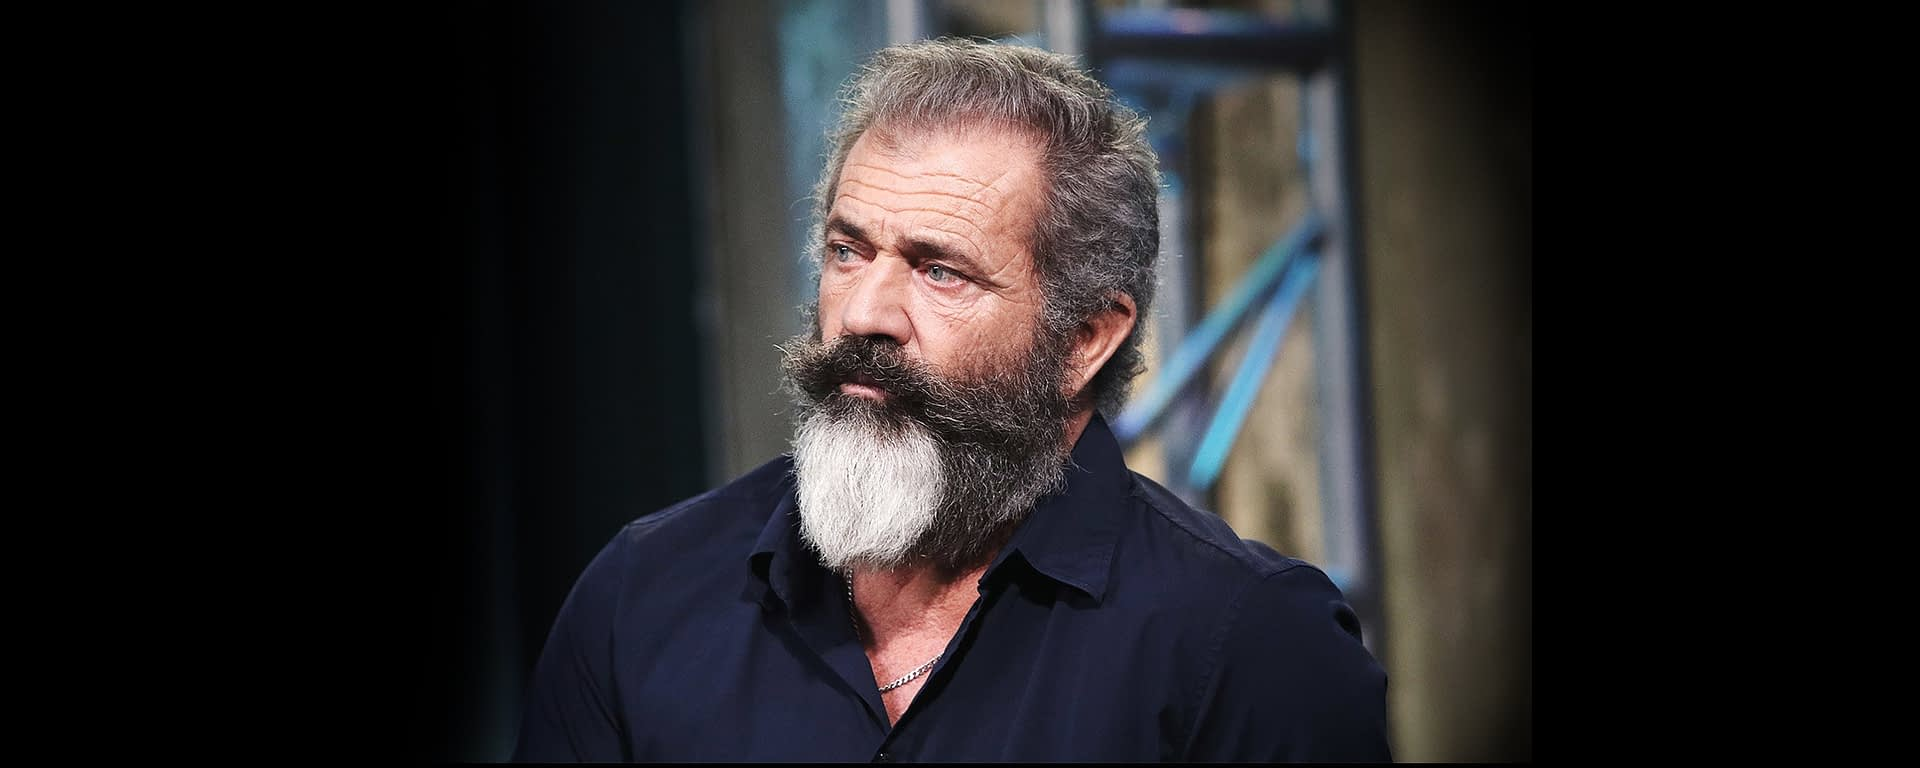 Mel Gibson is Coming to JRE This Week